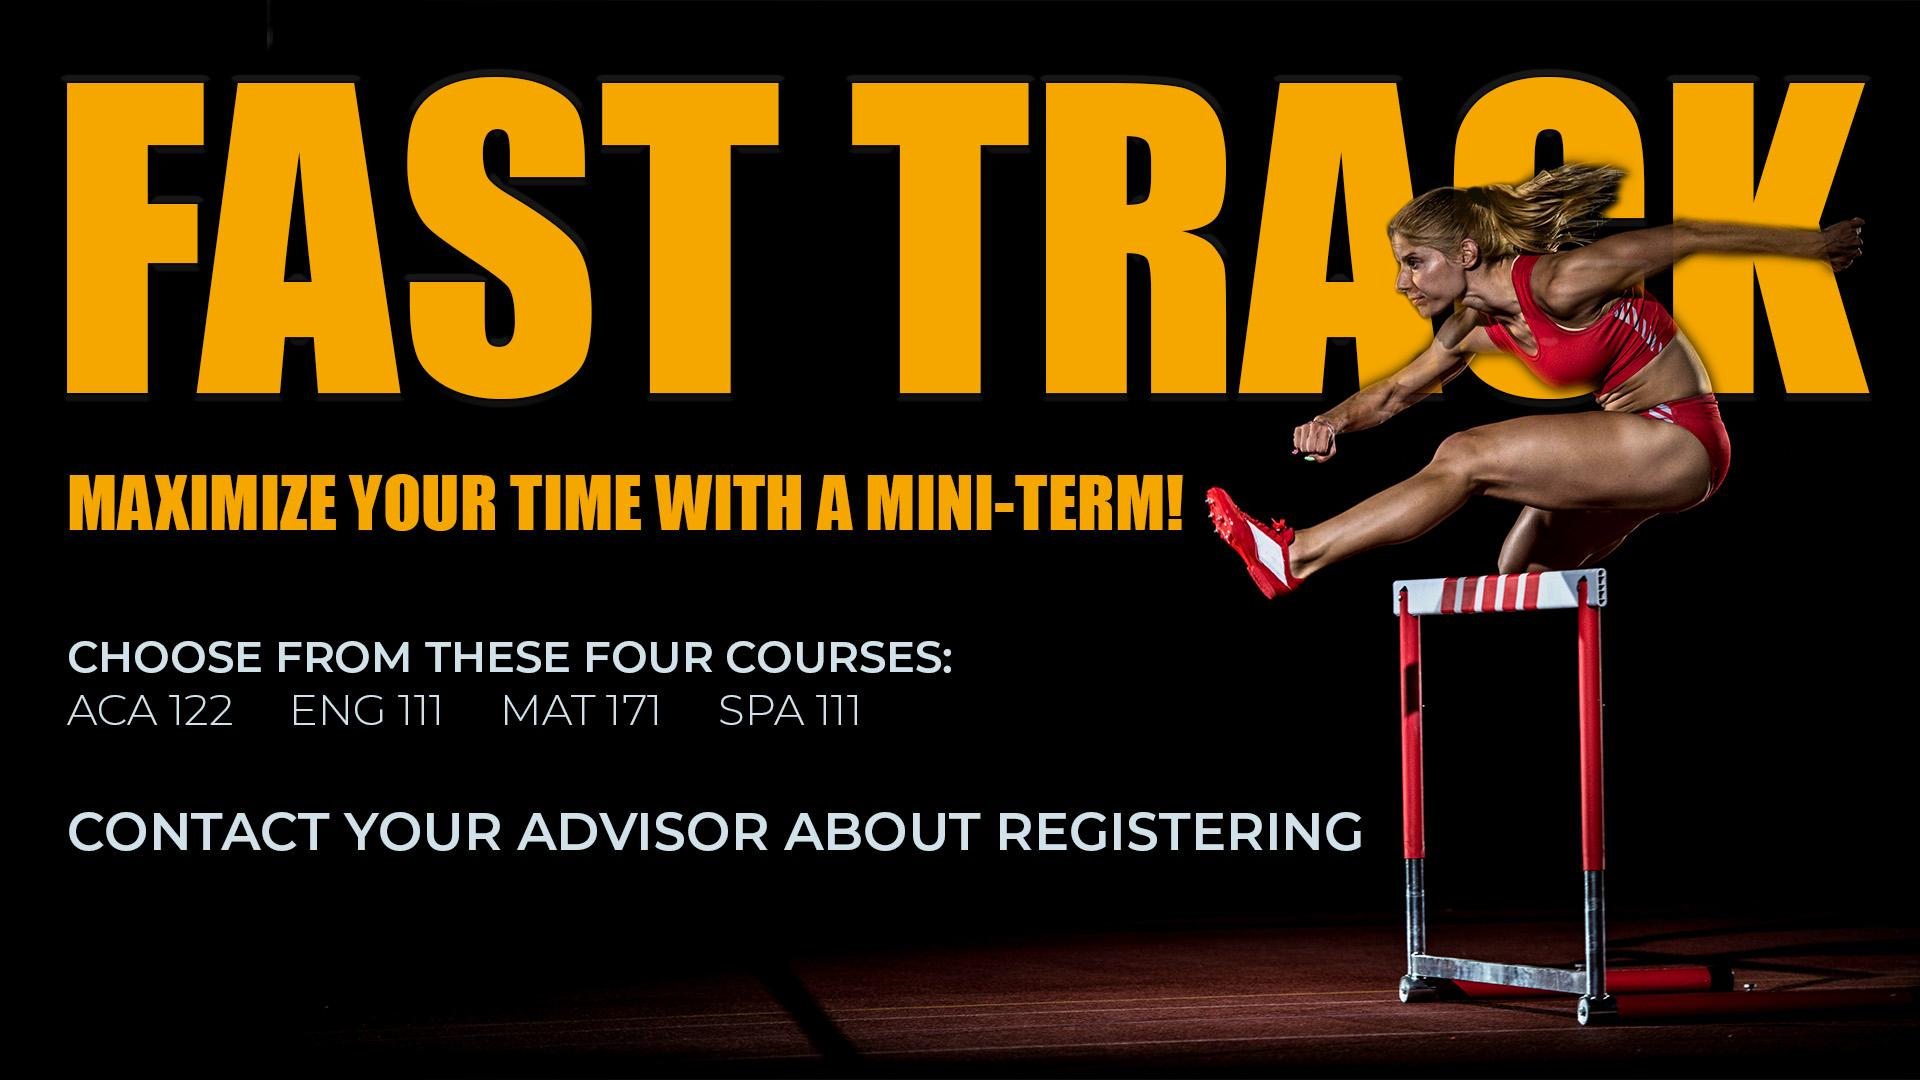 Fast Track your Future! Maximize your time with a min-term! Choose from one of the following courses: ACA 122, ENG 111, MAT 171, SPA 111. Contact your advisor about registration.